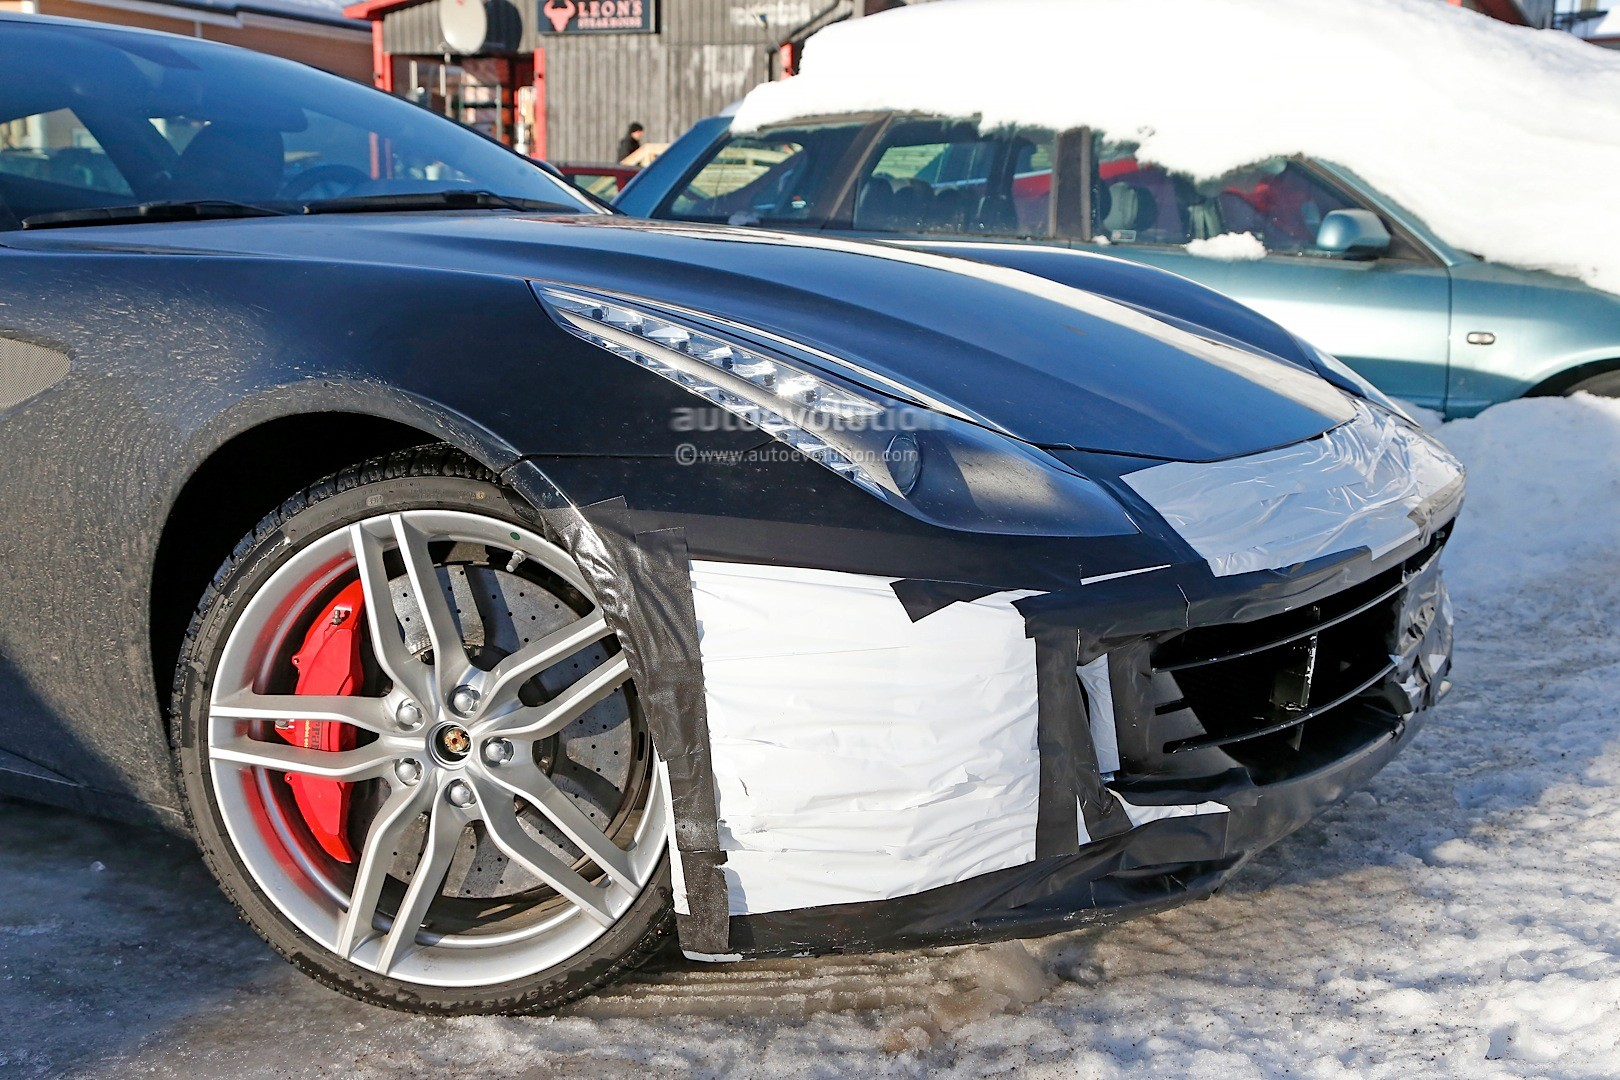 ferrari ff facelift spied in detail will arrive in 2016 with turbo v8 base model autoevolution - 2016 Ferrari 458 Replacement